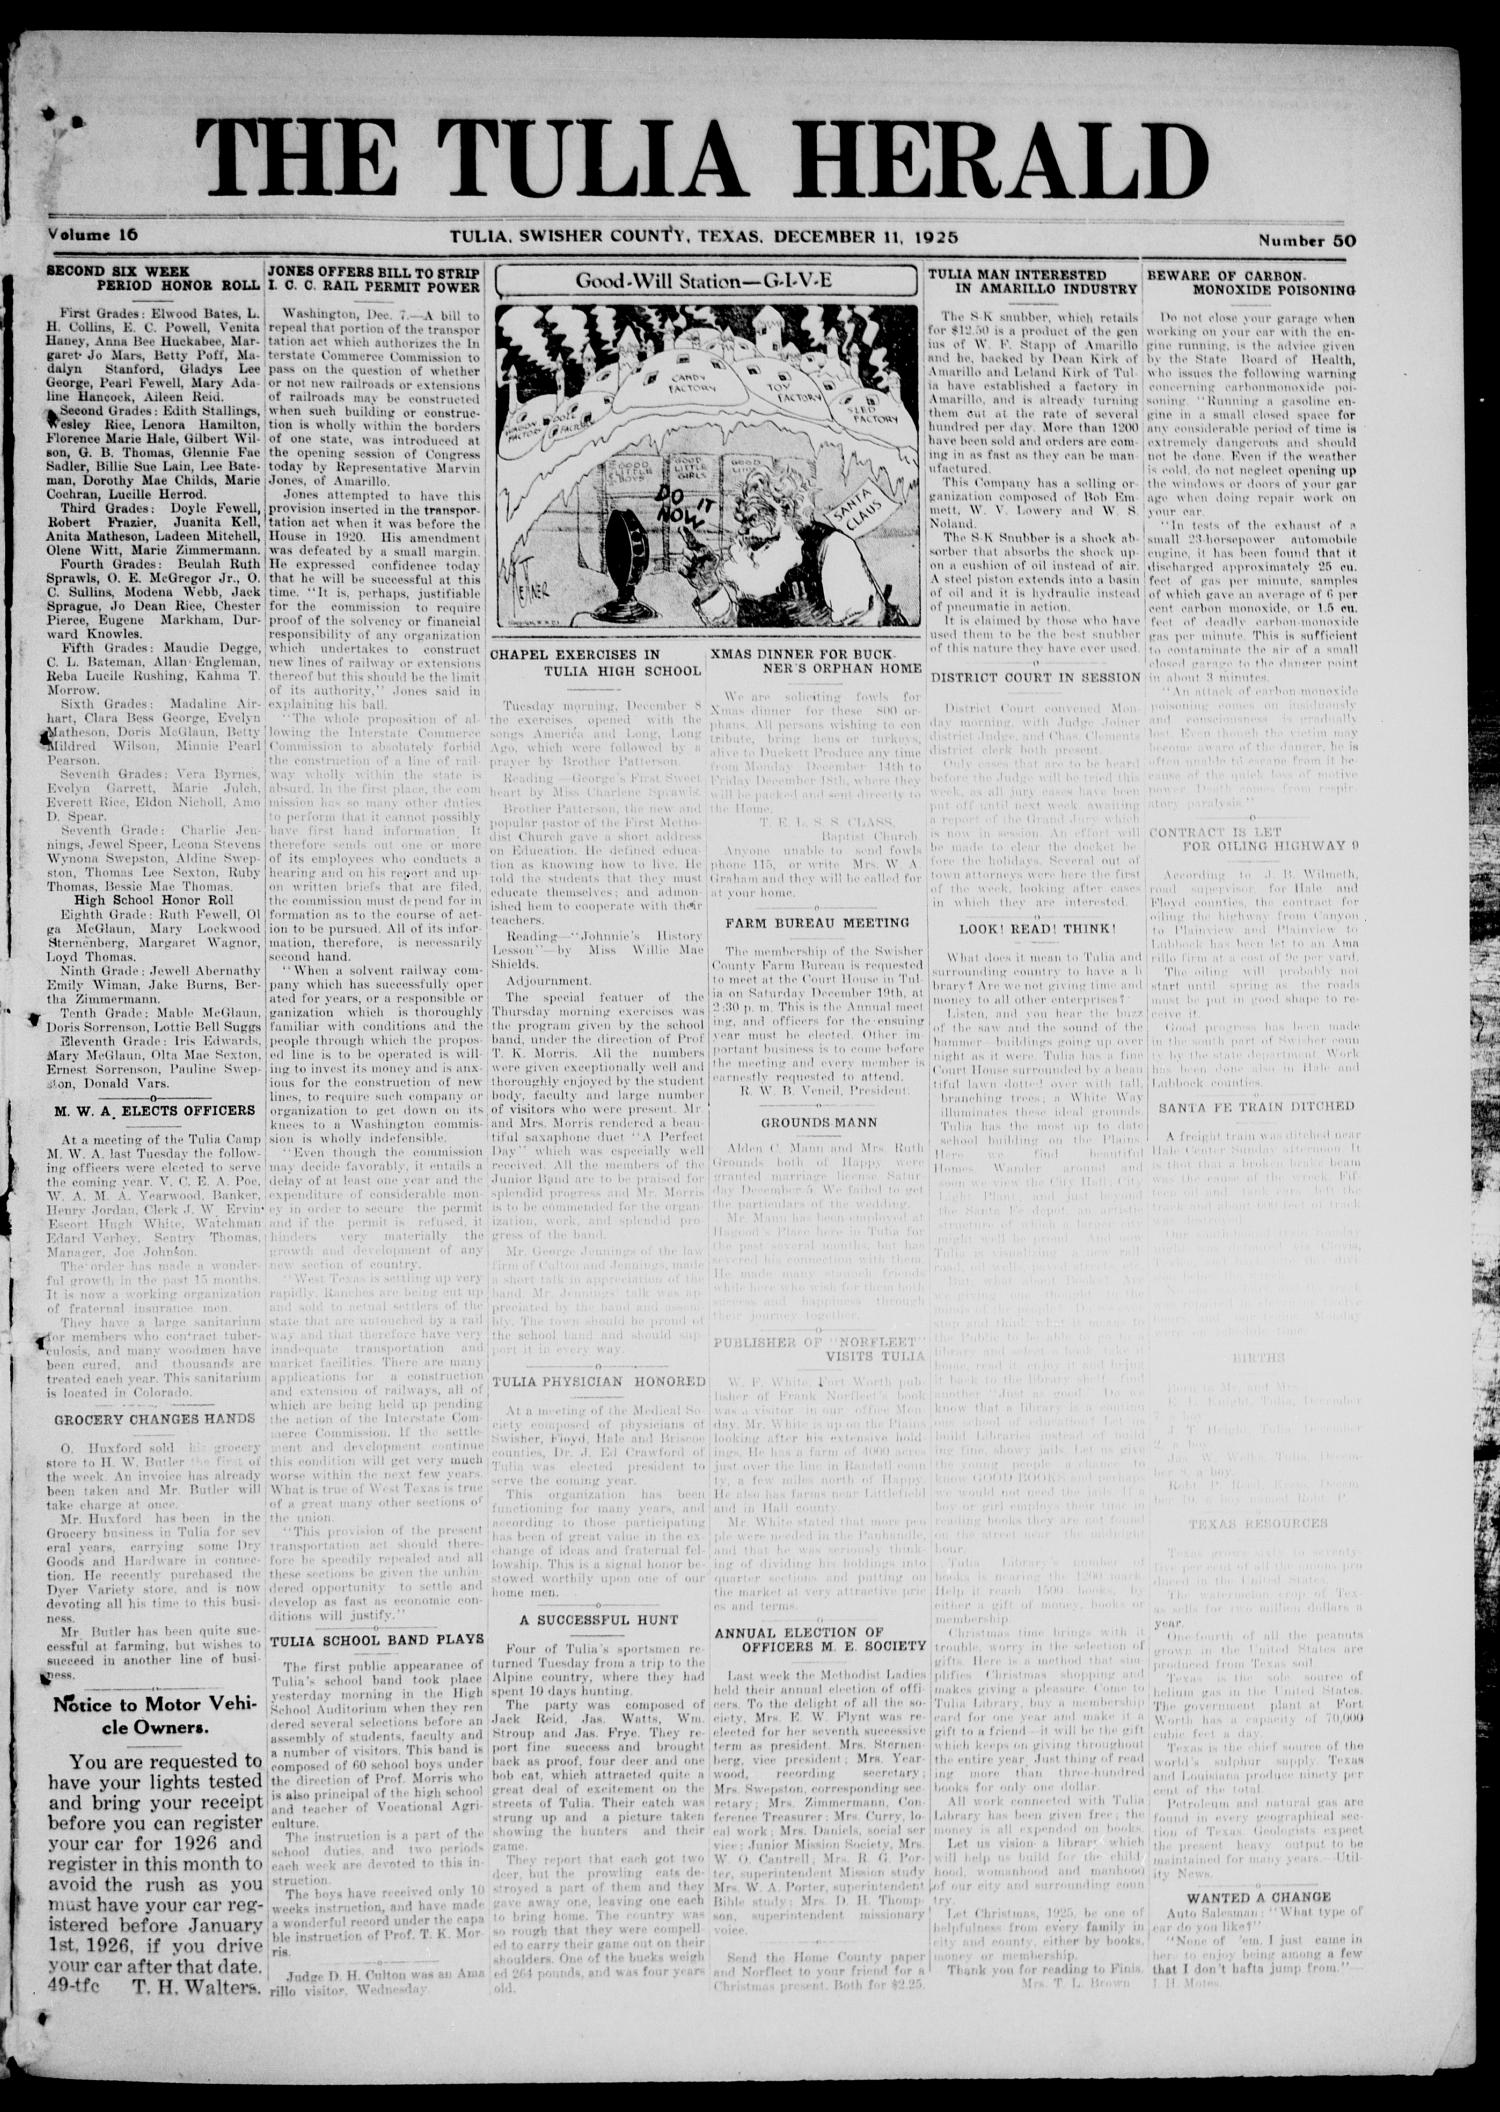 The Tulia Herald (Tulia, Tex), Vol. 16, No. 50, Ed. 1, Friday, December 11, 1925                                                                                                      1